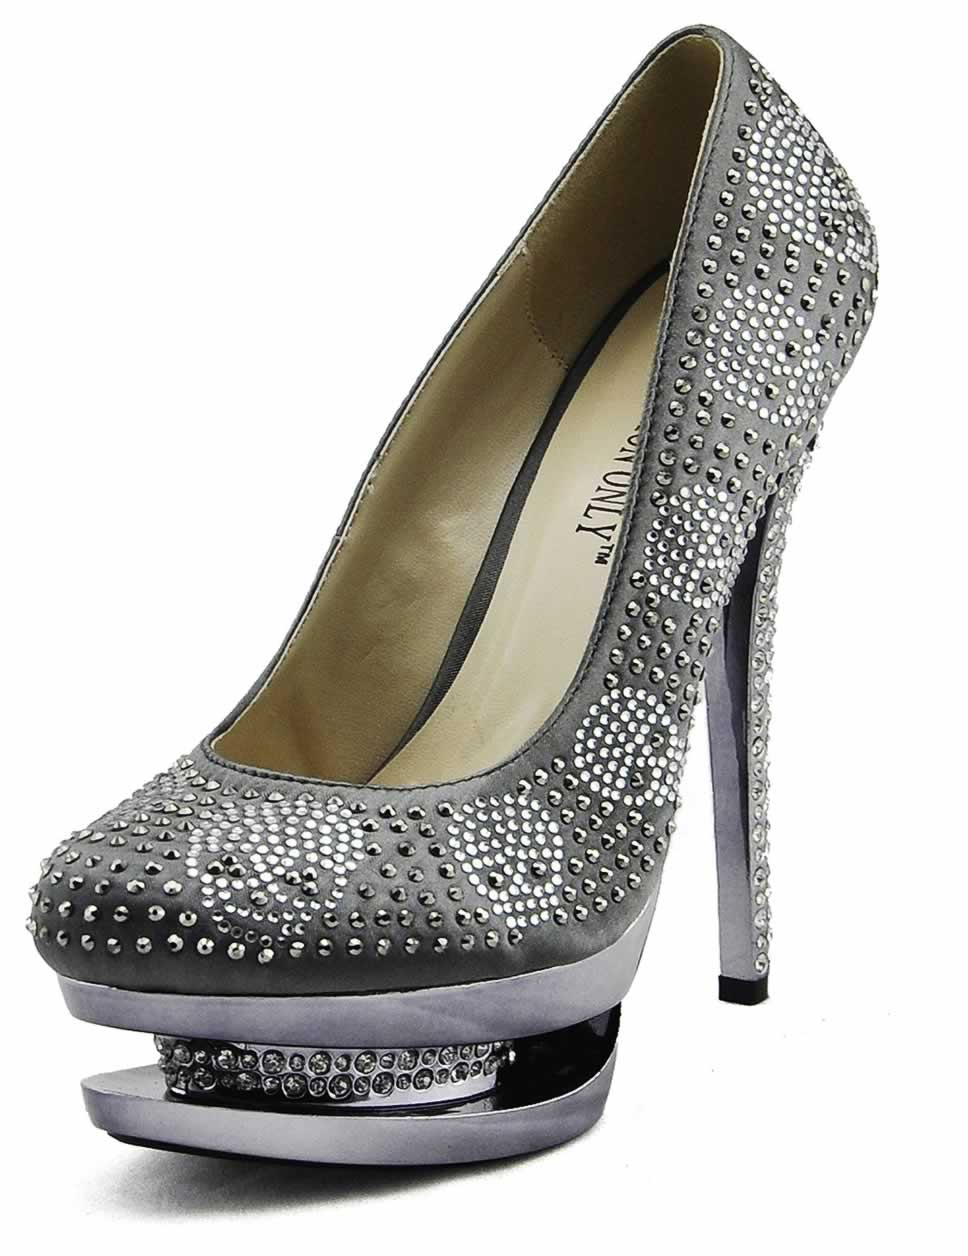 wholesale grey platform high heel shoes